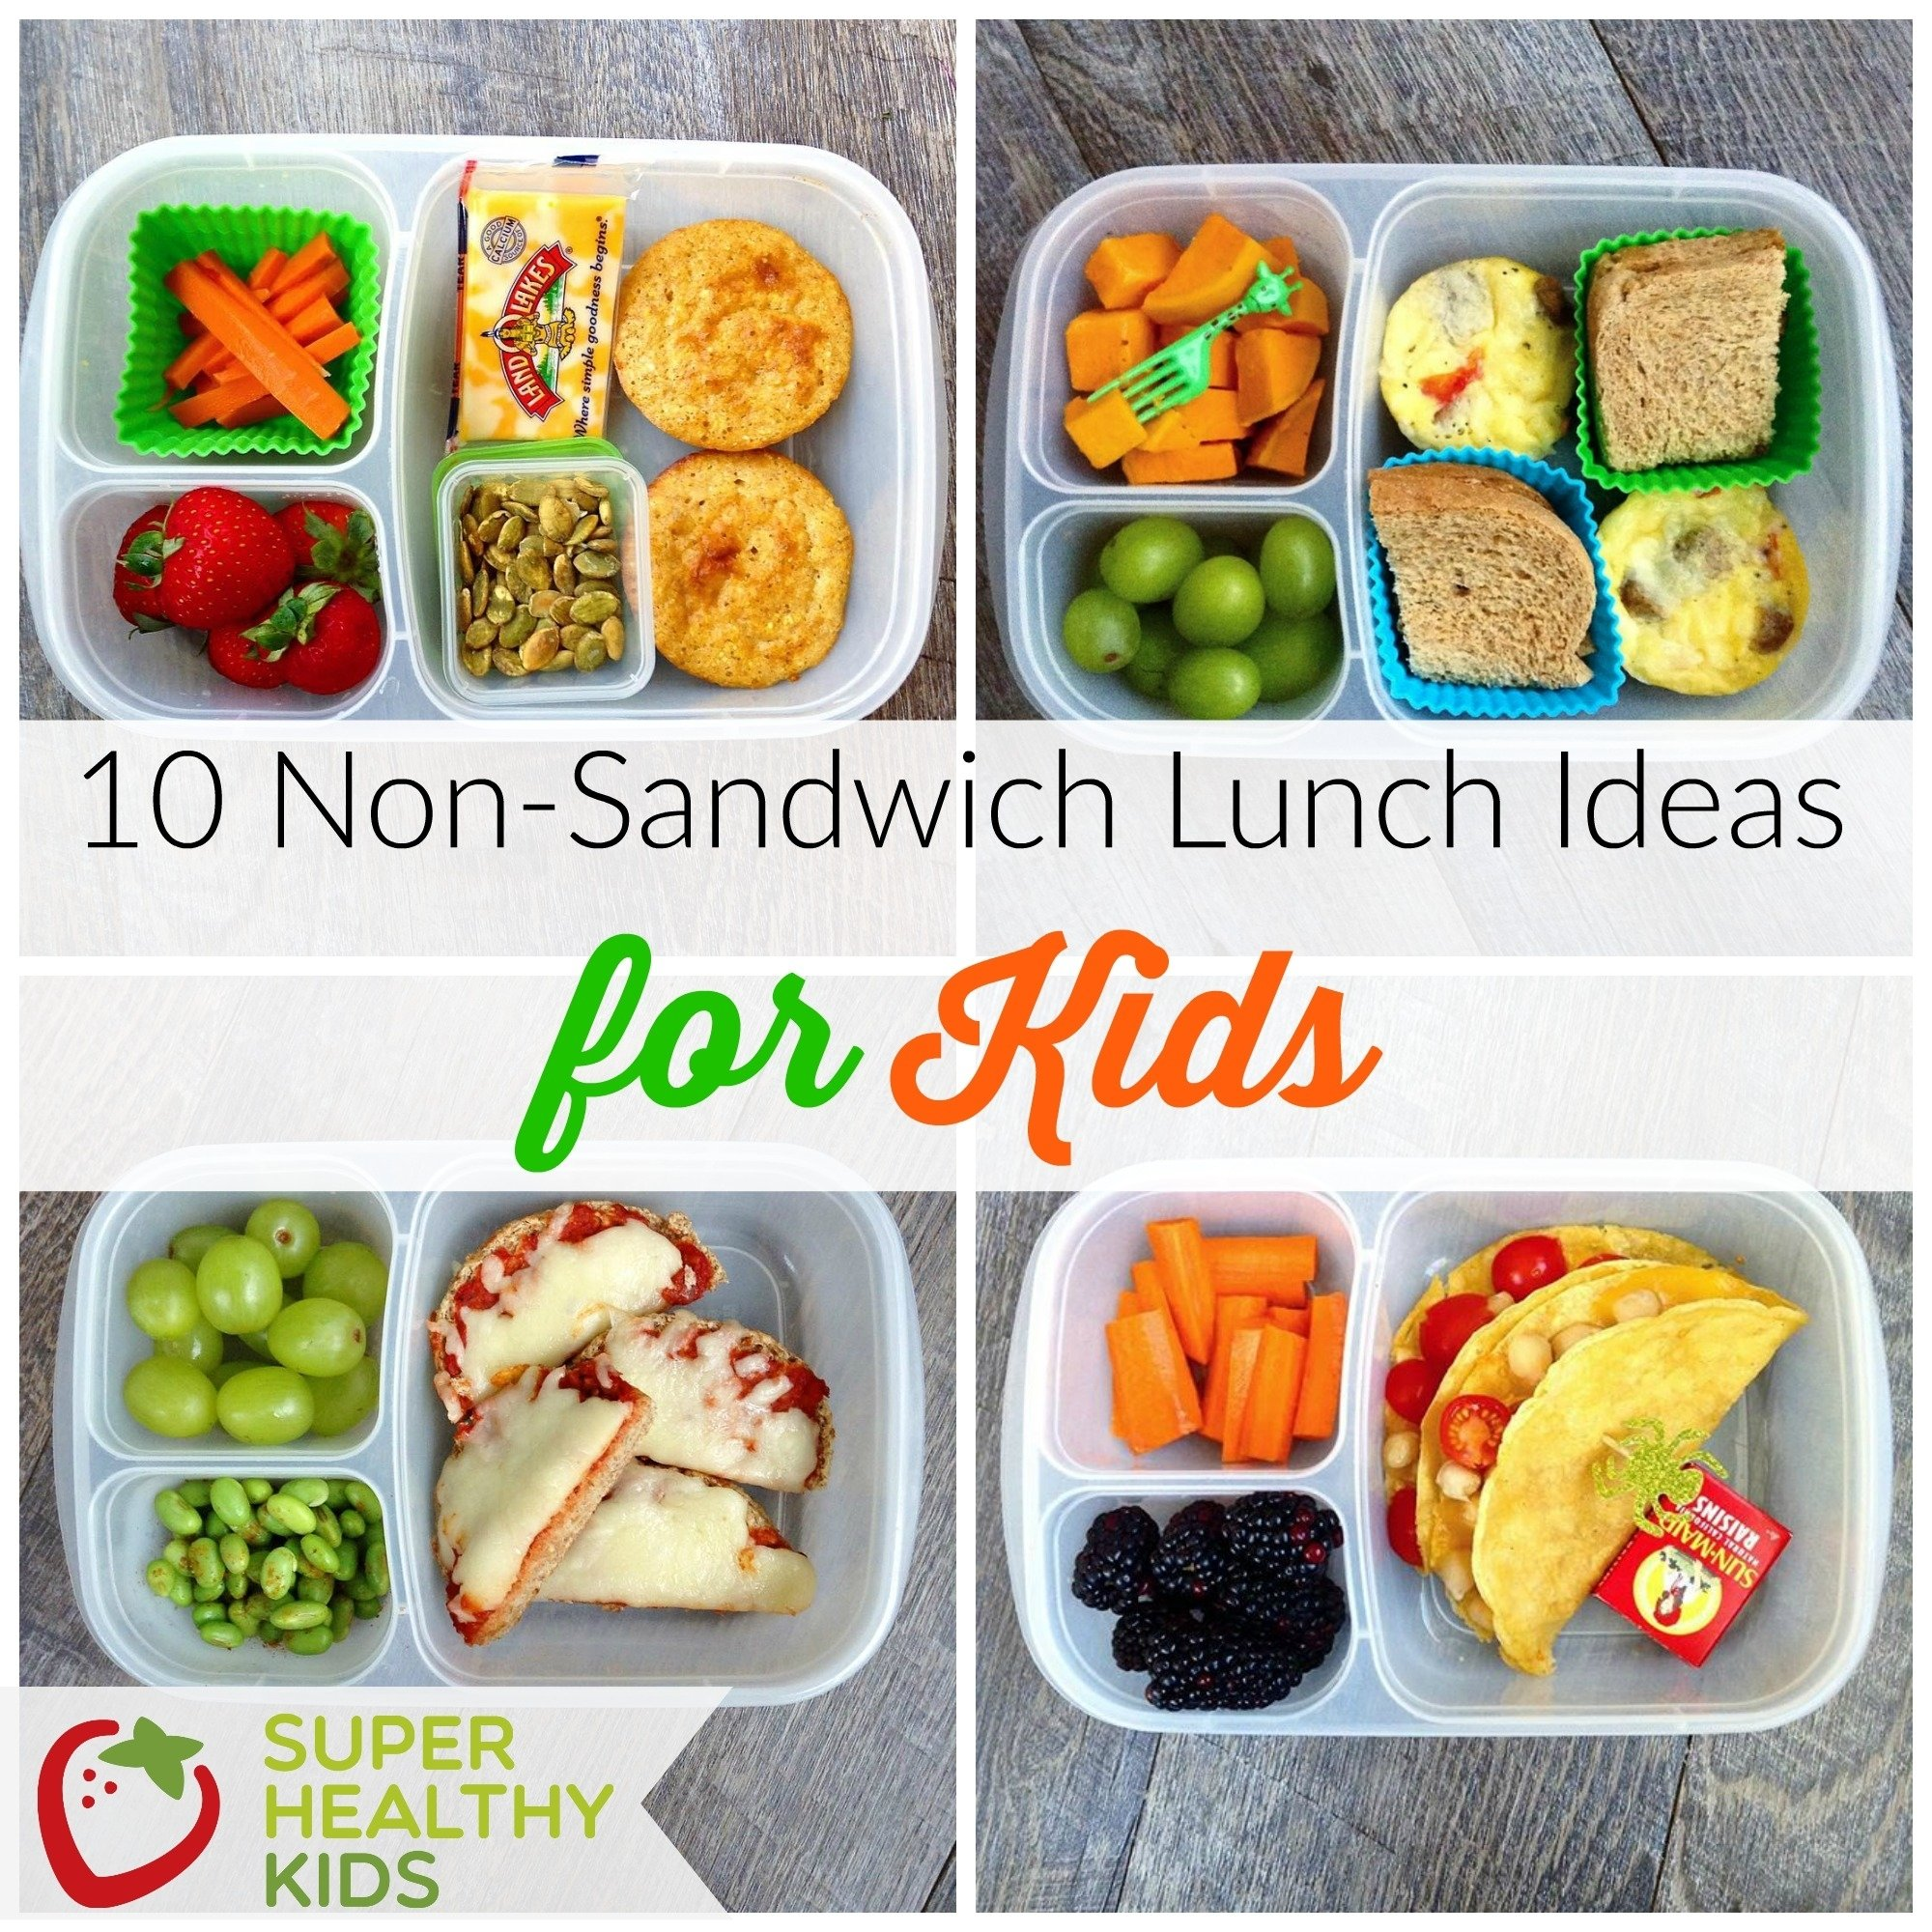 10 Amazing Healthy Lunch Ideas For Kids 10 non sandwich lunch ideas for kids healthy ideas for kids 4 2020